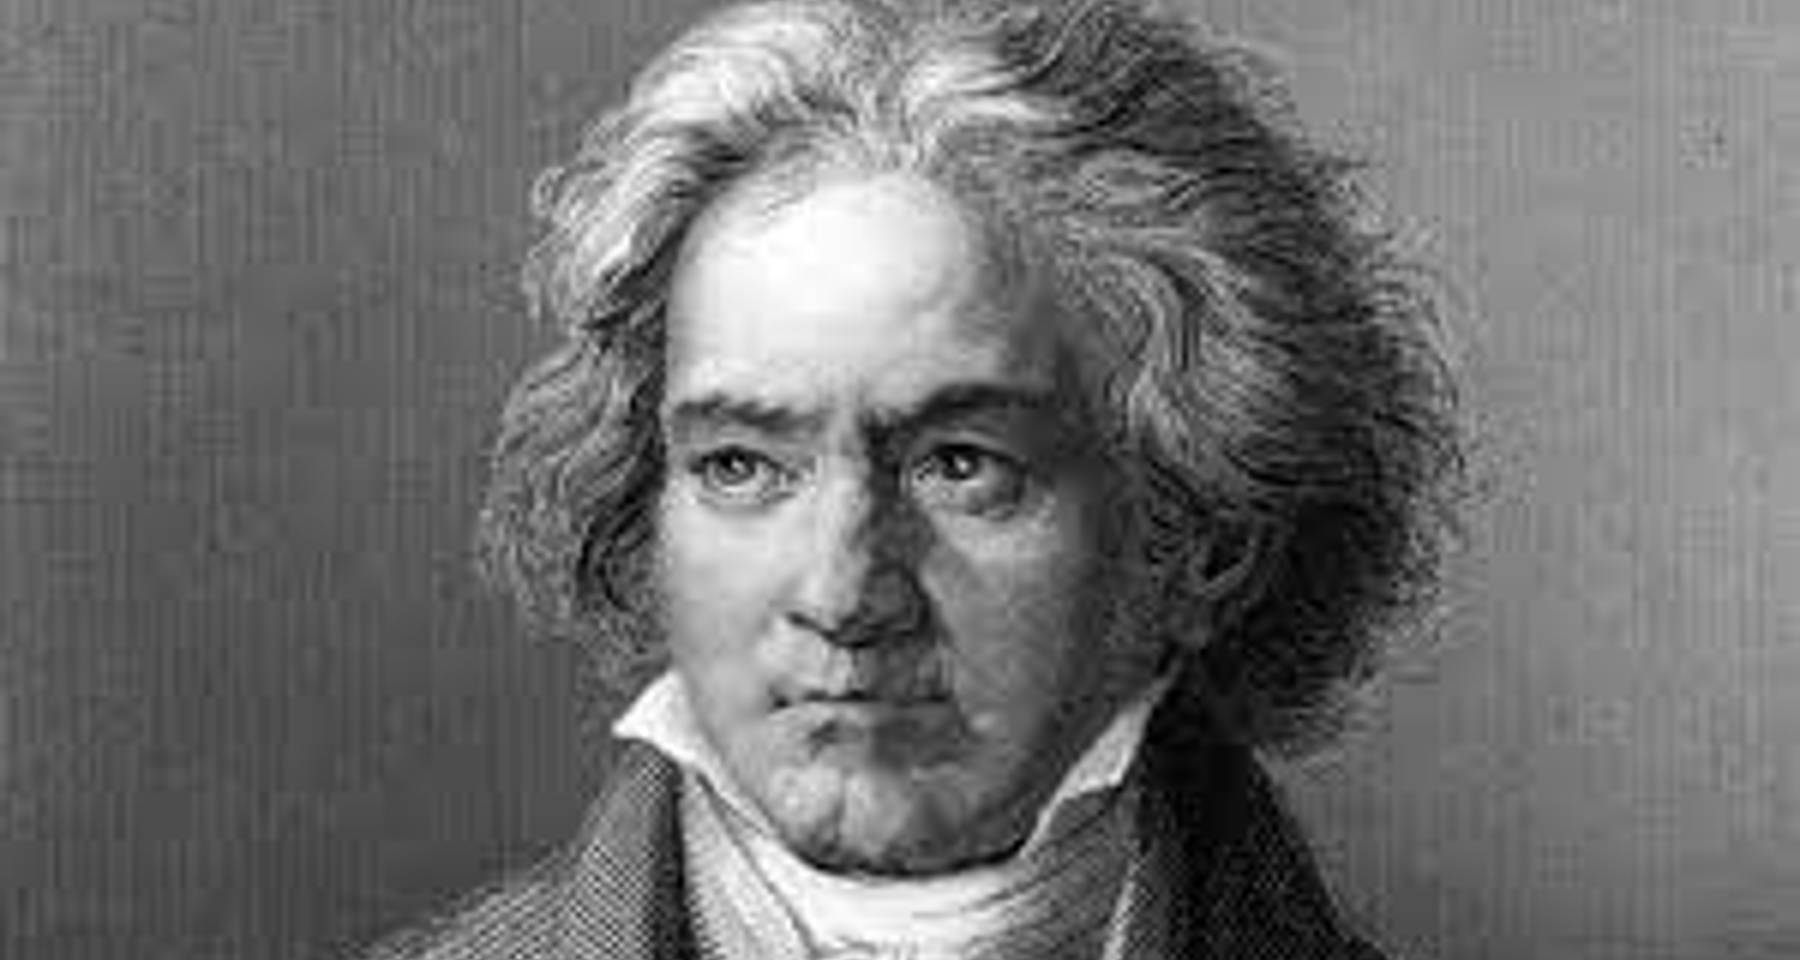 Jamaica Plain Chamber Music - Beethoven Bash Part 3 - Opus 130 and the Grosse Fugue